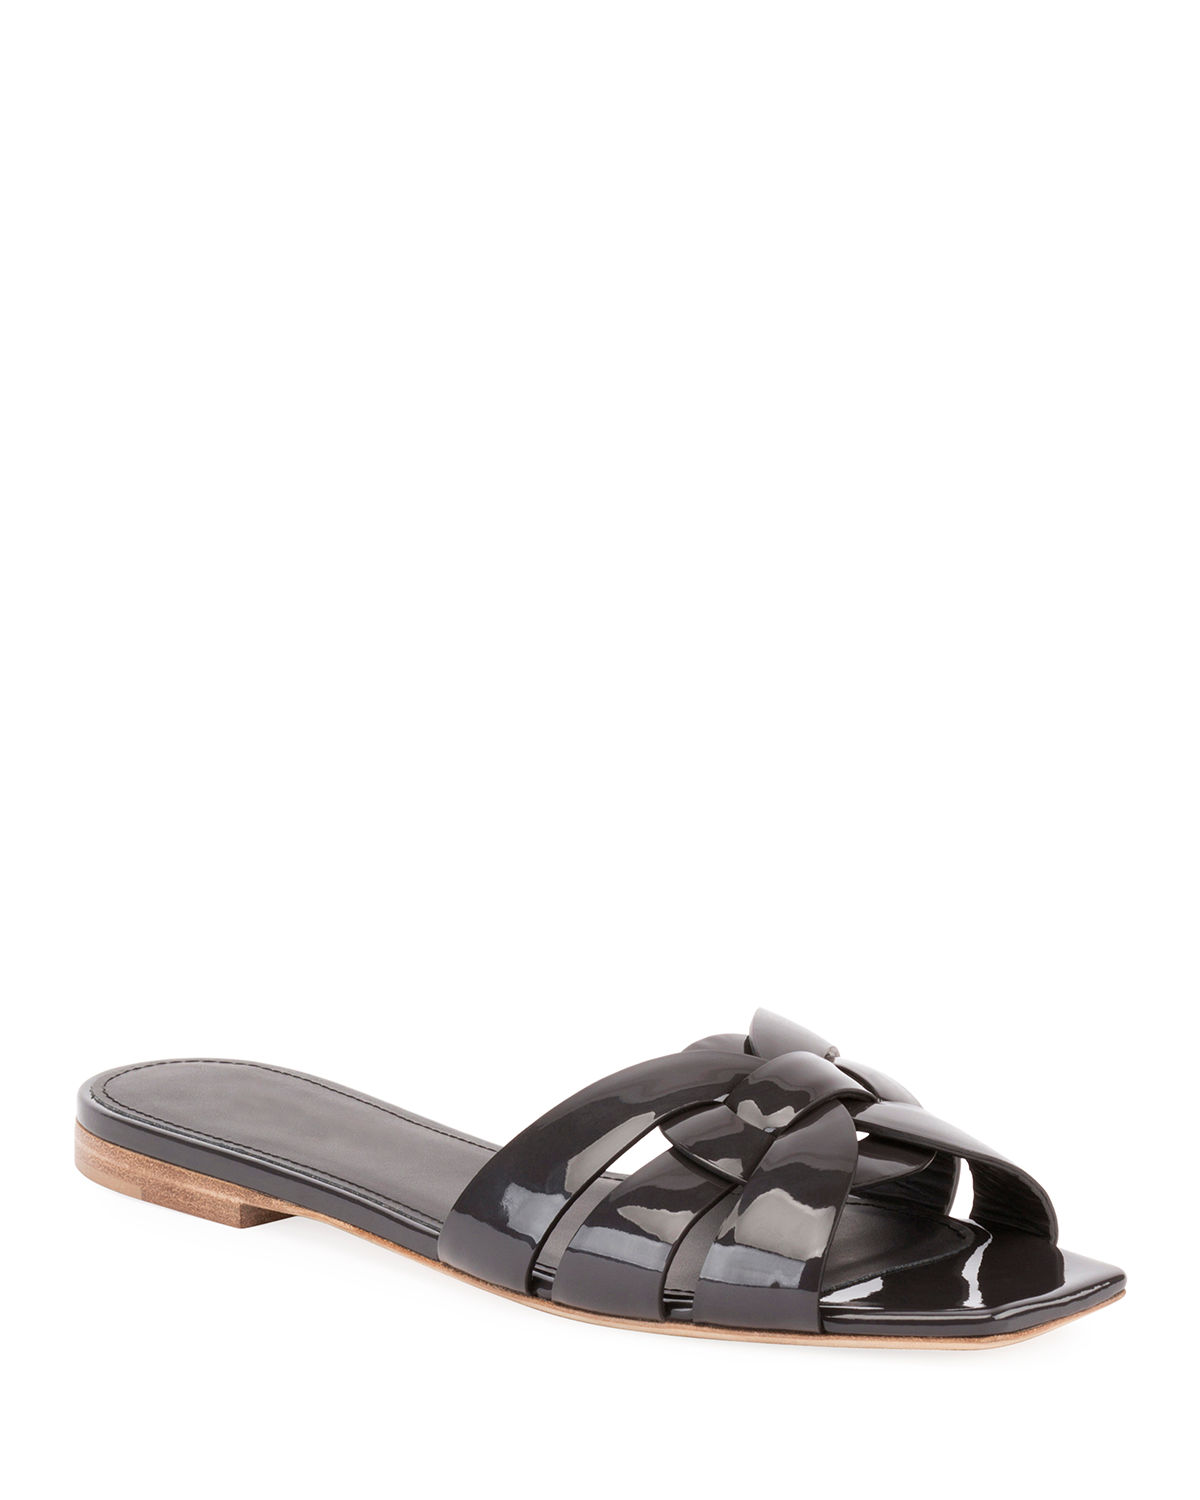 3d02b964ced2 Saint Laurent Tribute Patent Leather Flat Slide Sandals